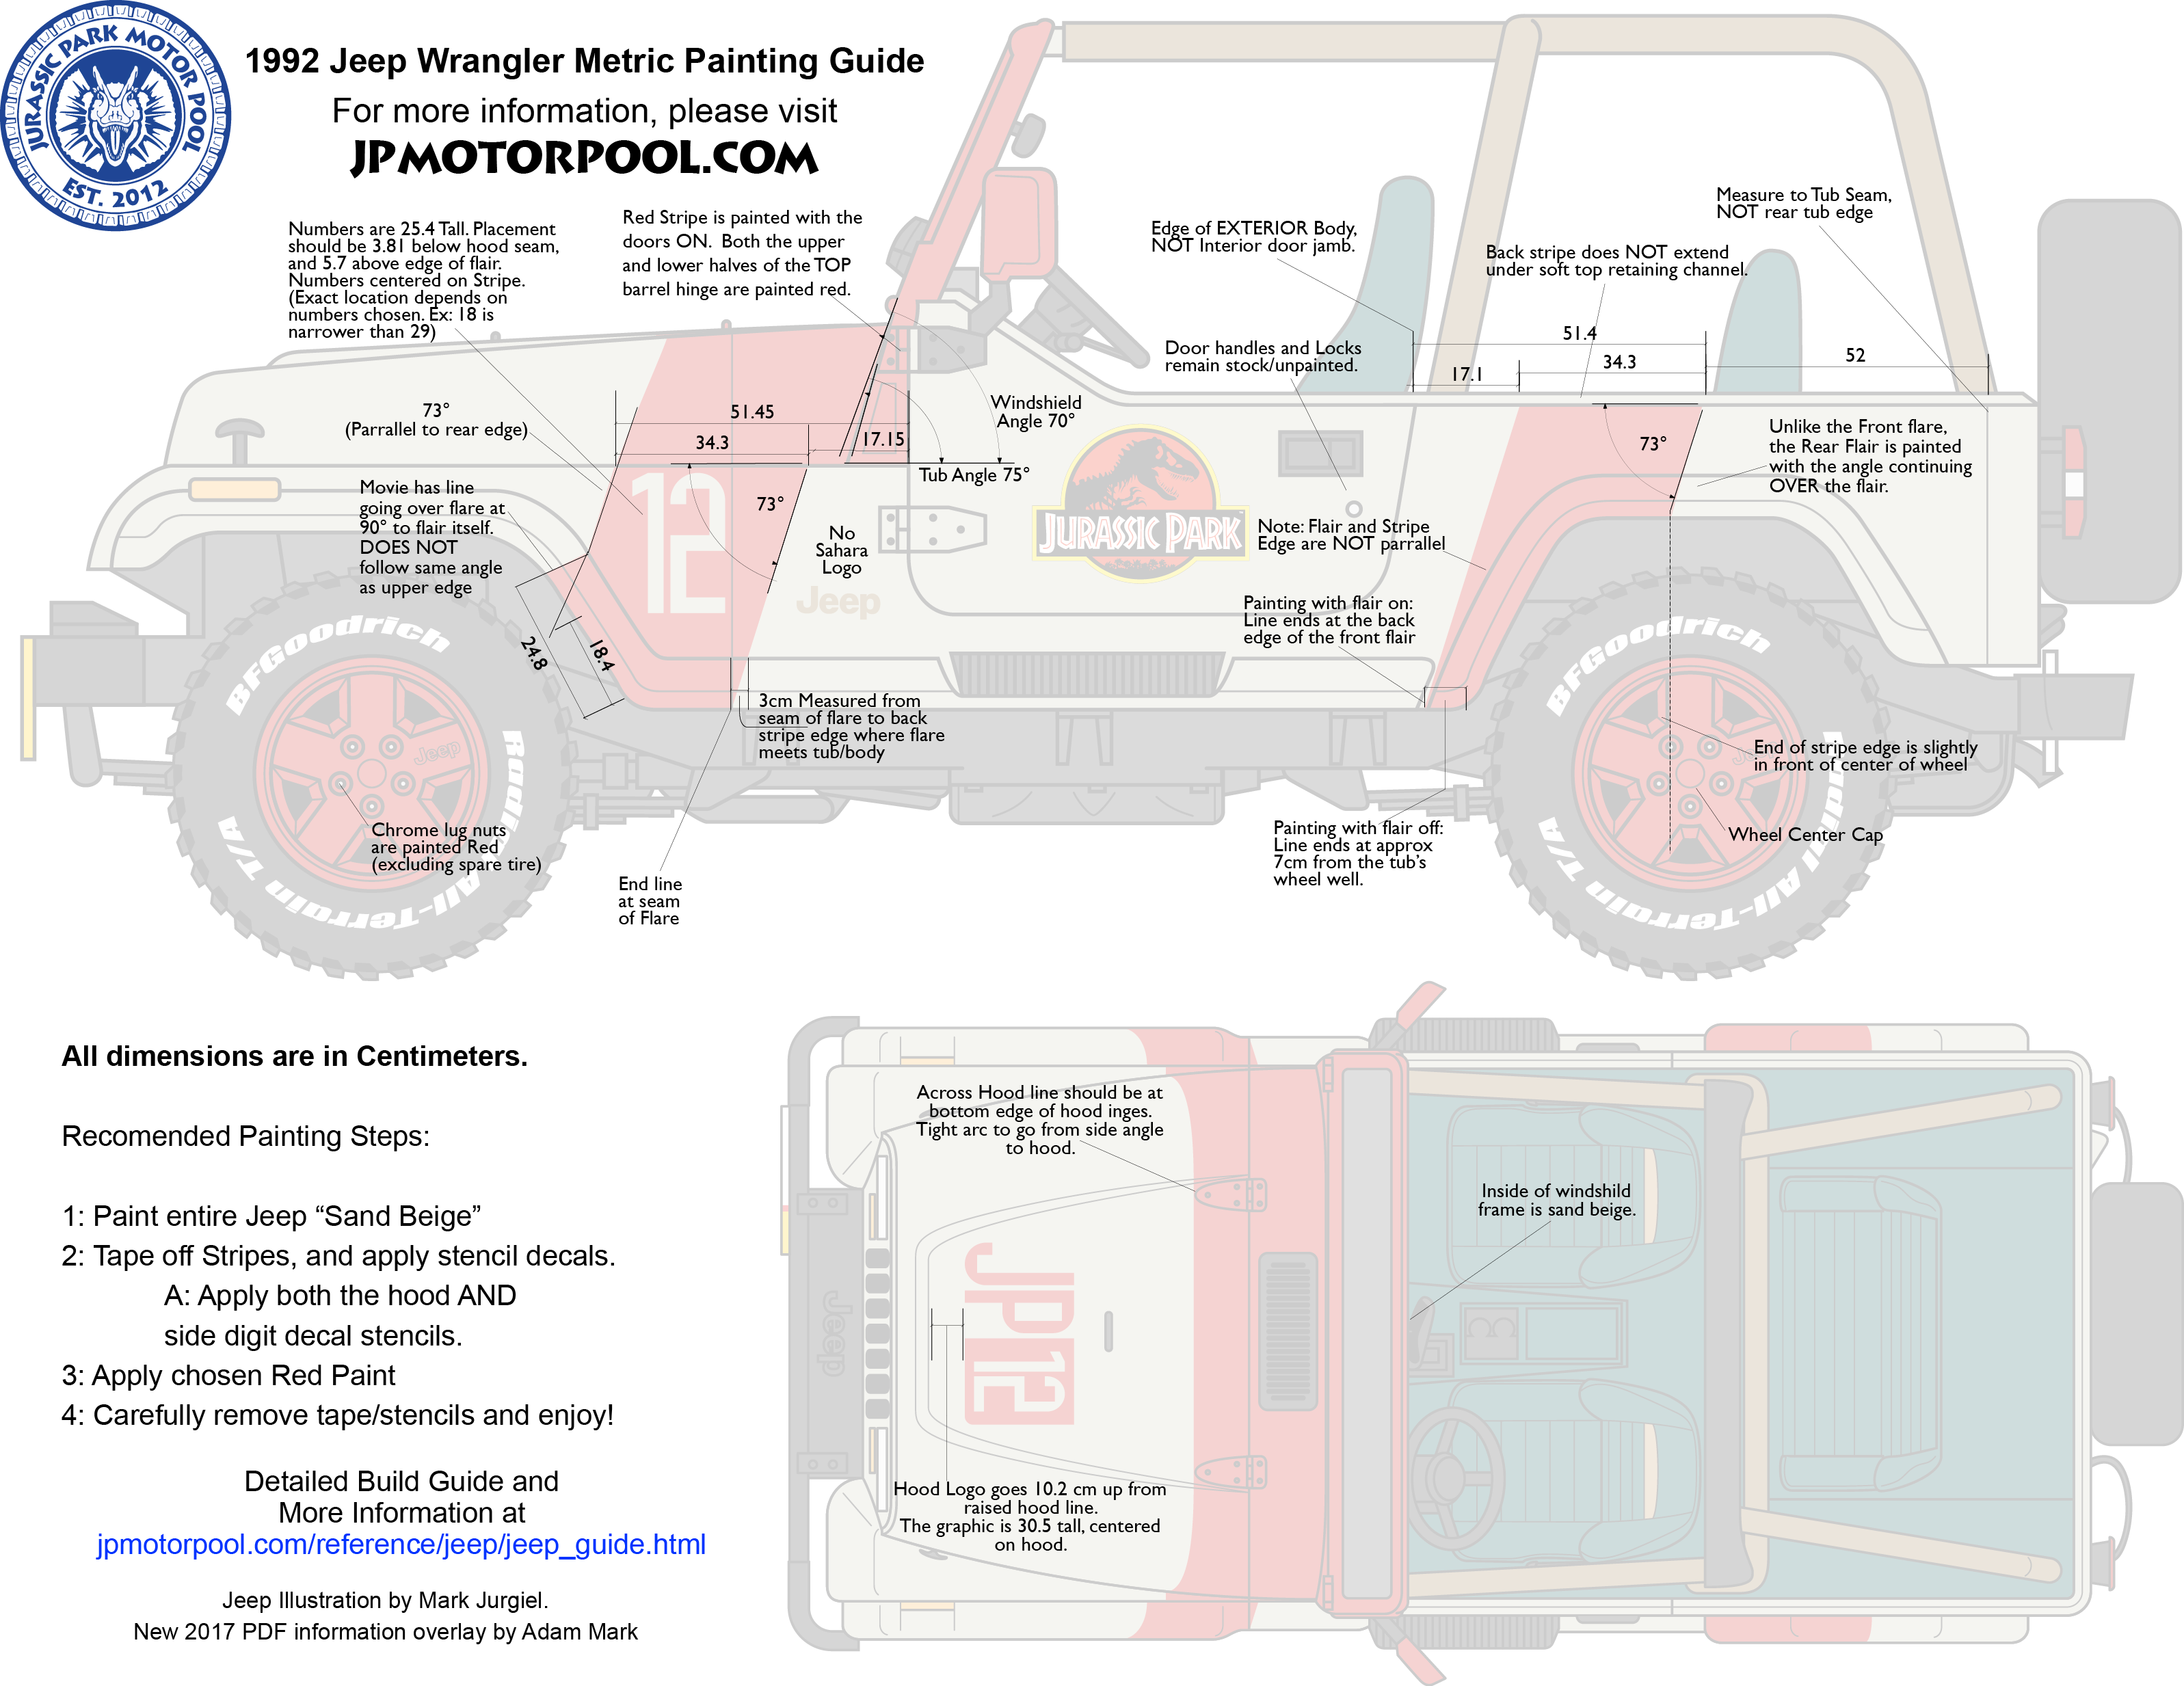 Reference: Jeep Wrangler Guide | Juric Park Motor Pool ... on jeep wrangler electrical schematics, jeep cj2a wiring diagram, jeep j20 wiring diagram, jeep cj7 wiring diagram, jeep xj wiring diagram, 4x4 wiring diagram, jeep jk fuse diagram, willys jeep wiring diagram, jeep jk parts diagram, jeep commander wiring diagram, accessories wiring diagram, jeep hurricane wiring diagram, jeep liberty wiring diagram, jeep wrangler wiring diagram, jeep jk belt diagram, jeep cj5 wiring diagram, jeep jk fuel diagram, jeep zj wiring diagram, jeep tj wiring diagram, jeep wiring harness diagram,